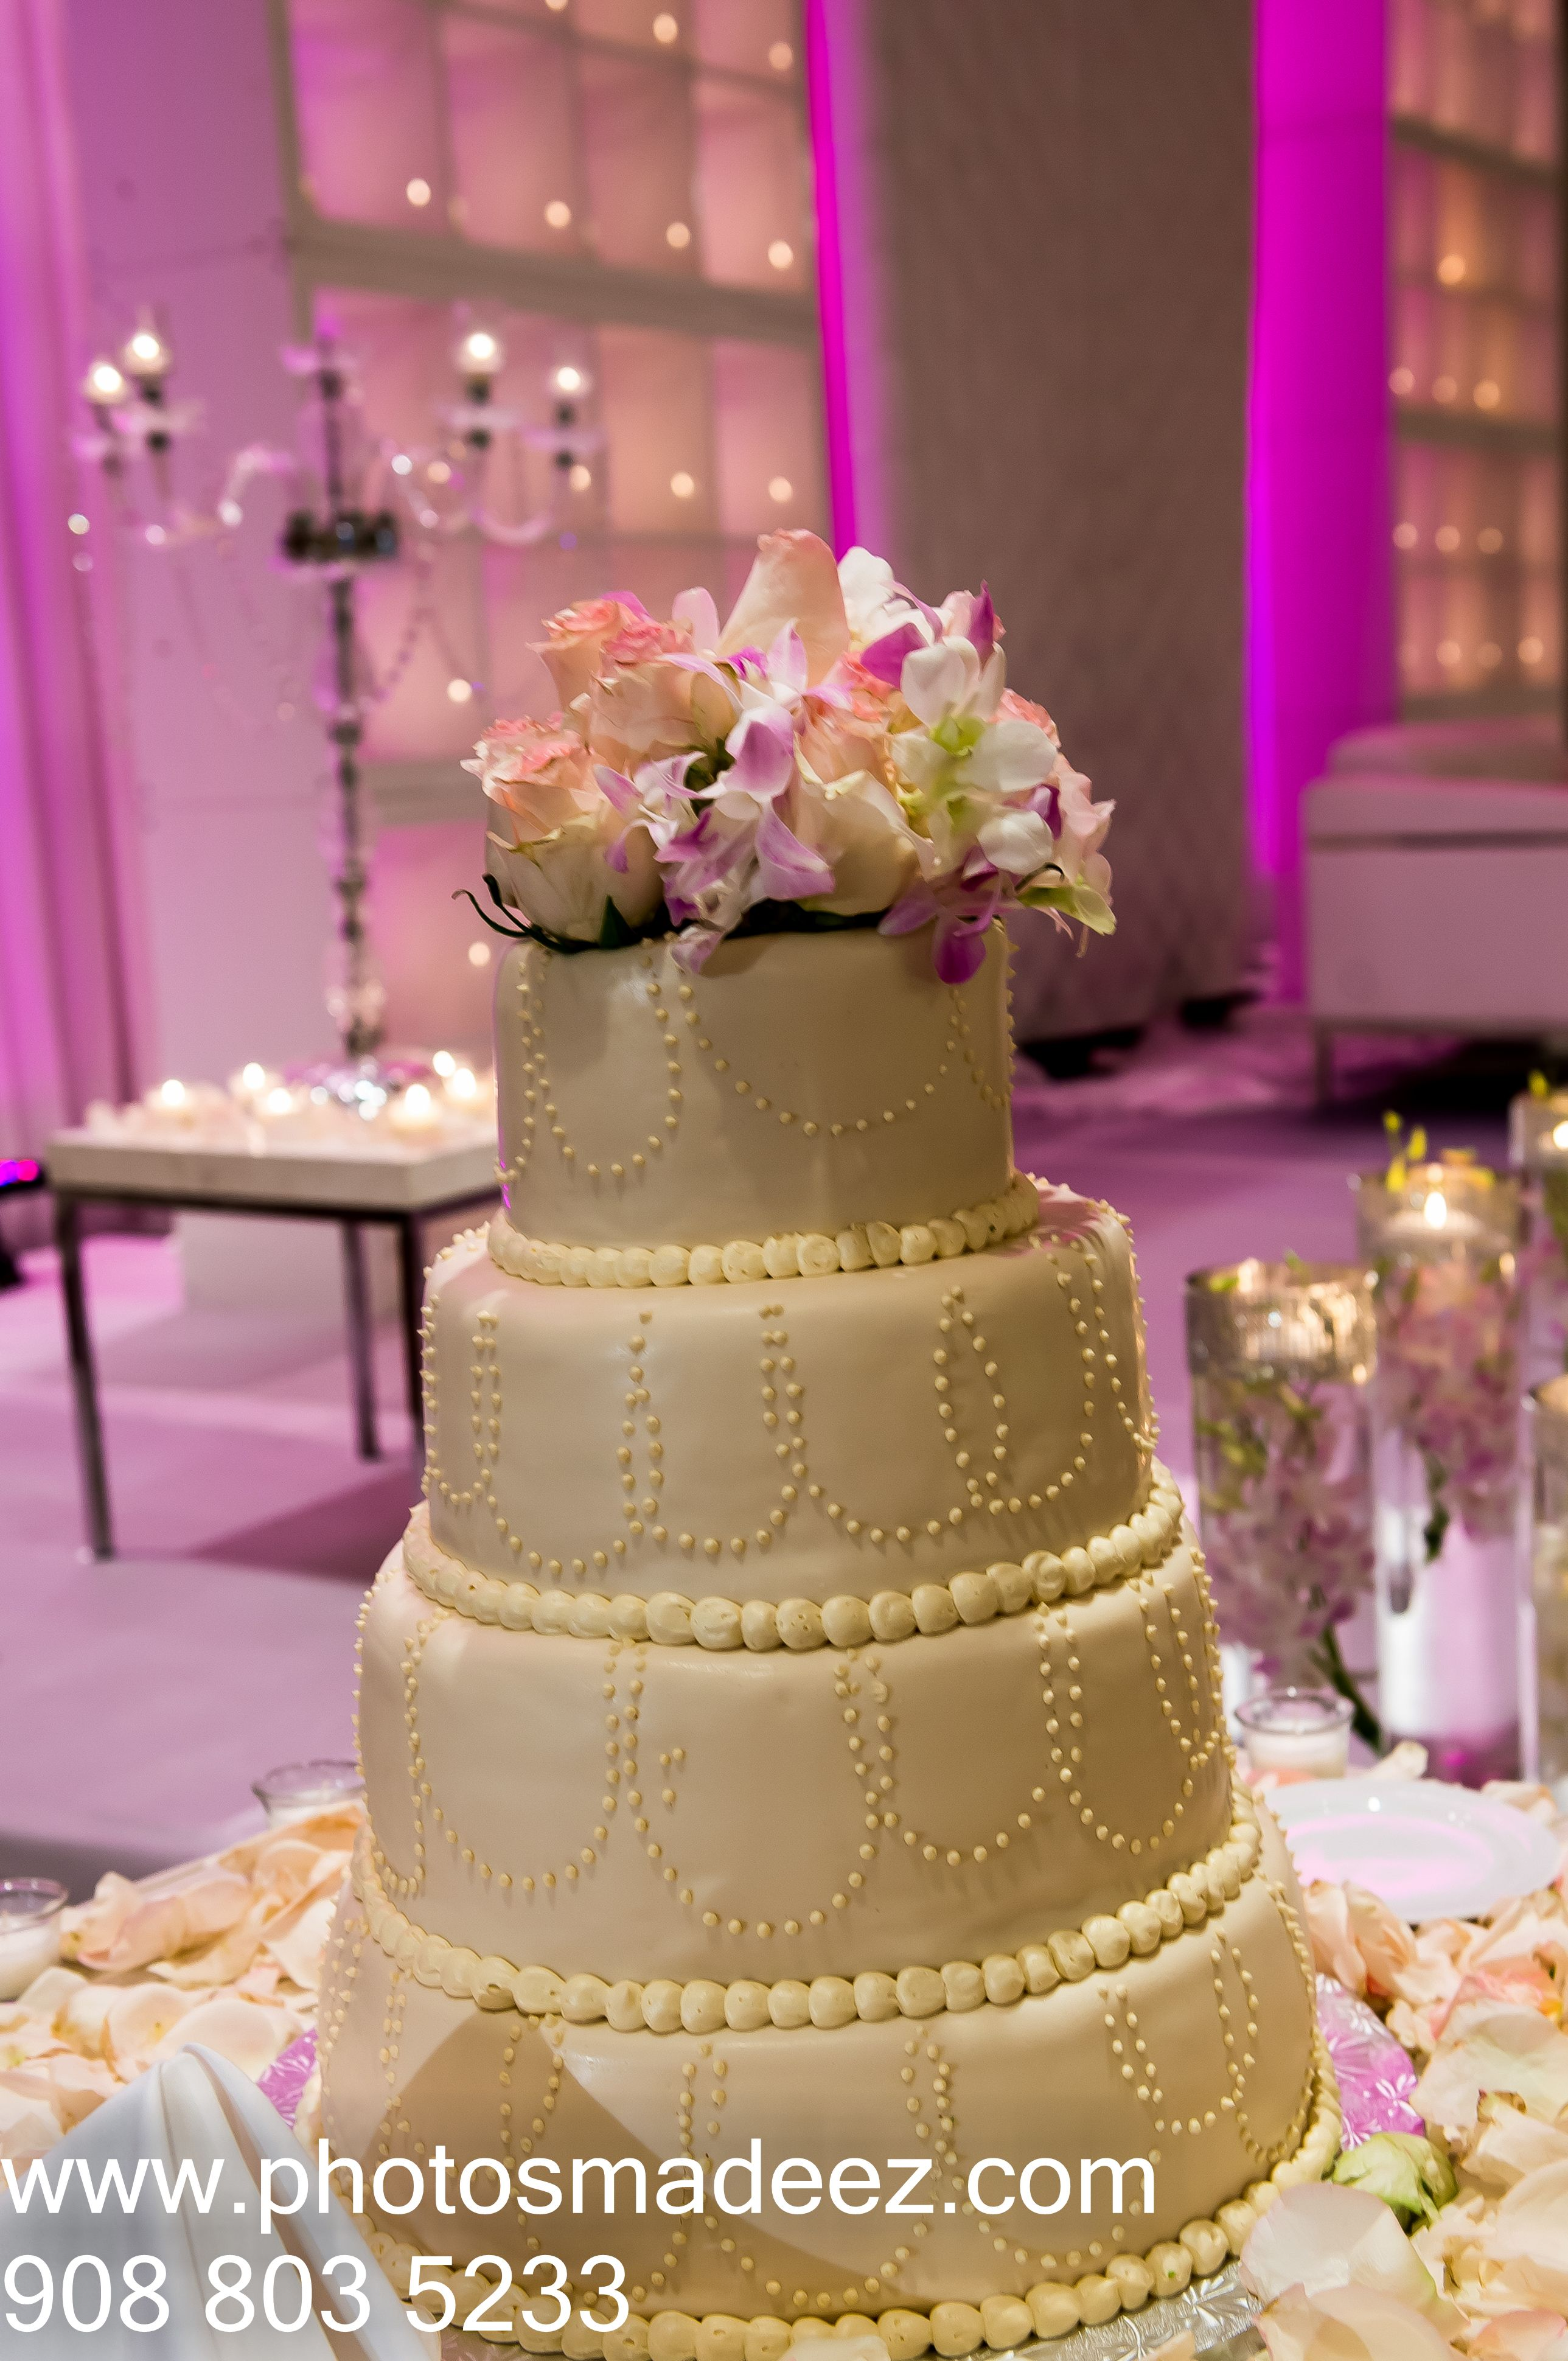 Best wedding cakes long island - Wedding Cake For A Mixed Wedding At Vip Country Club In Long Island Ny